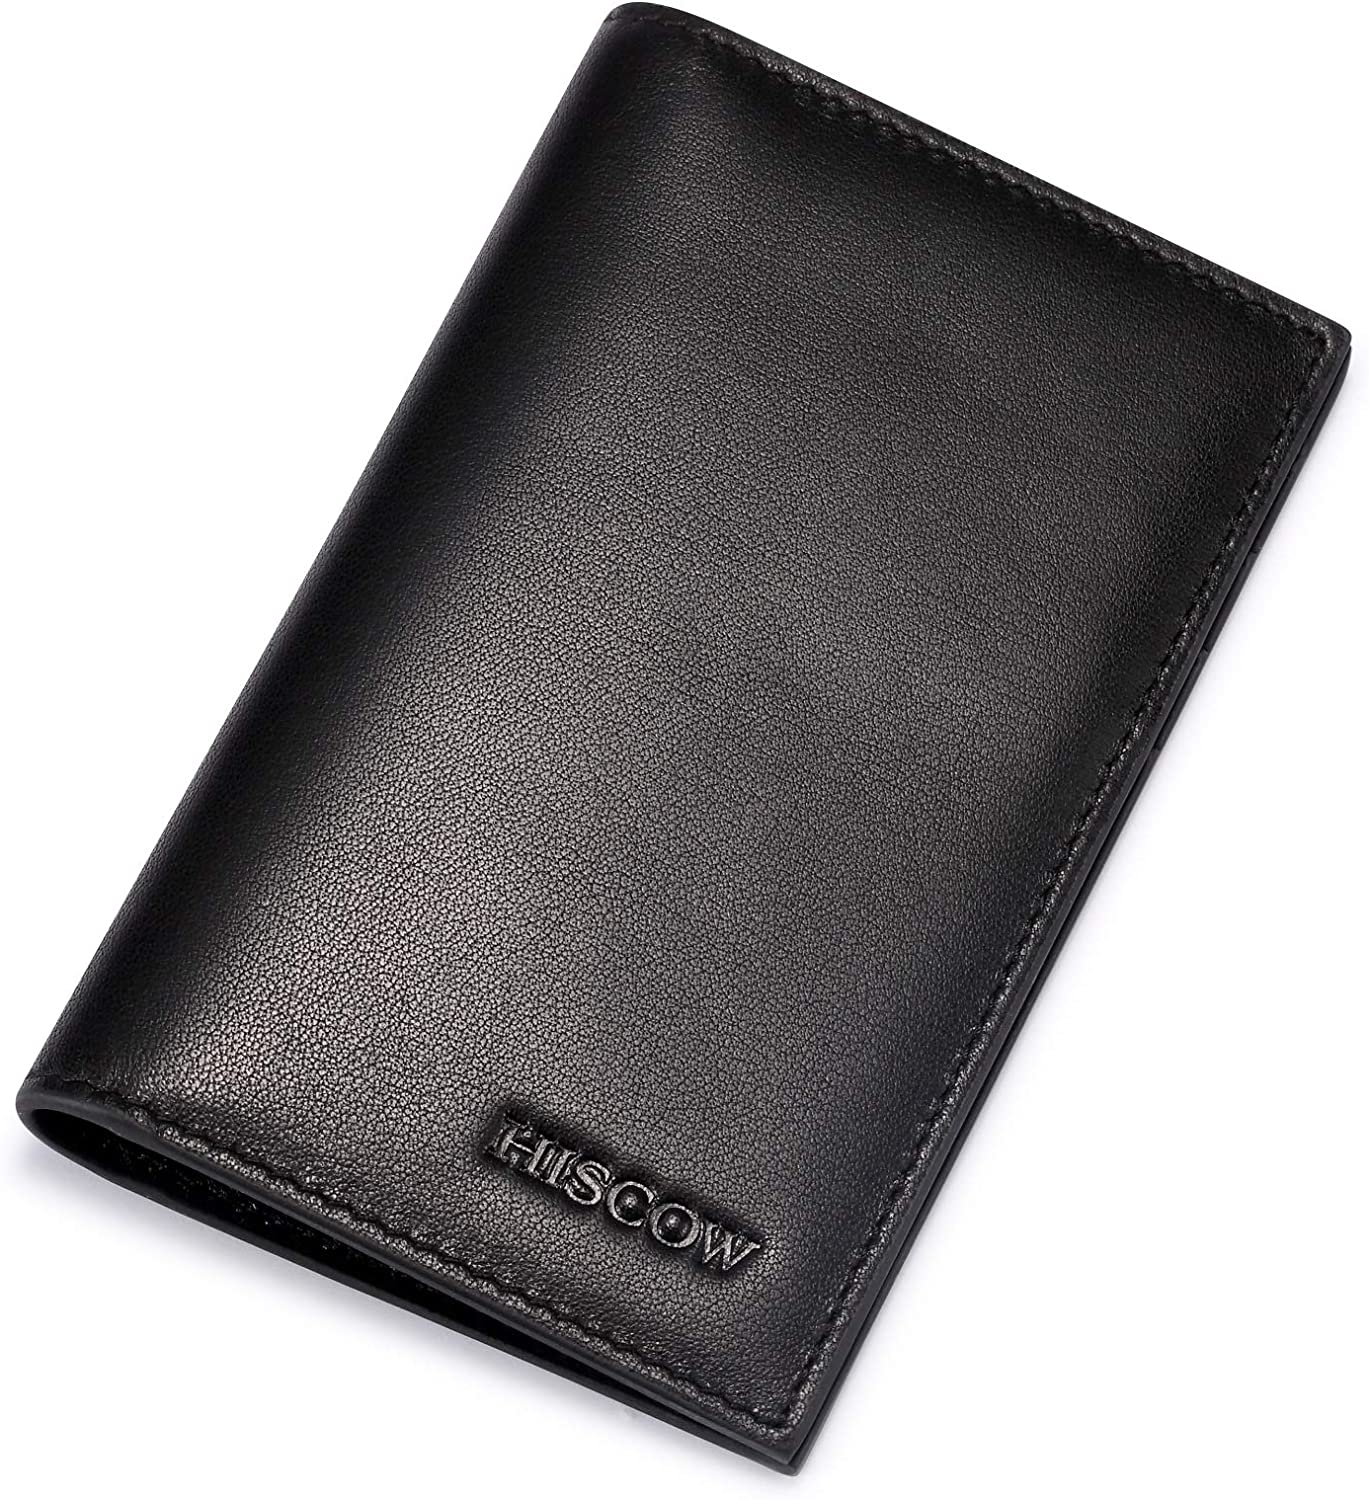 Full Grain Leather HISCOW Bifold Credit Card Holder 8cc